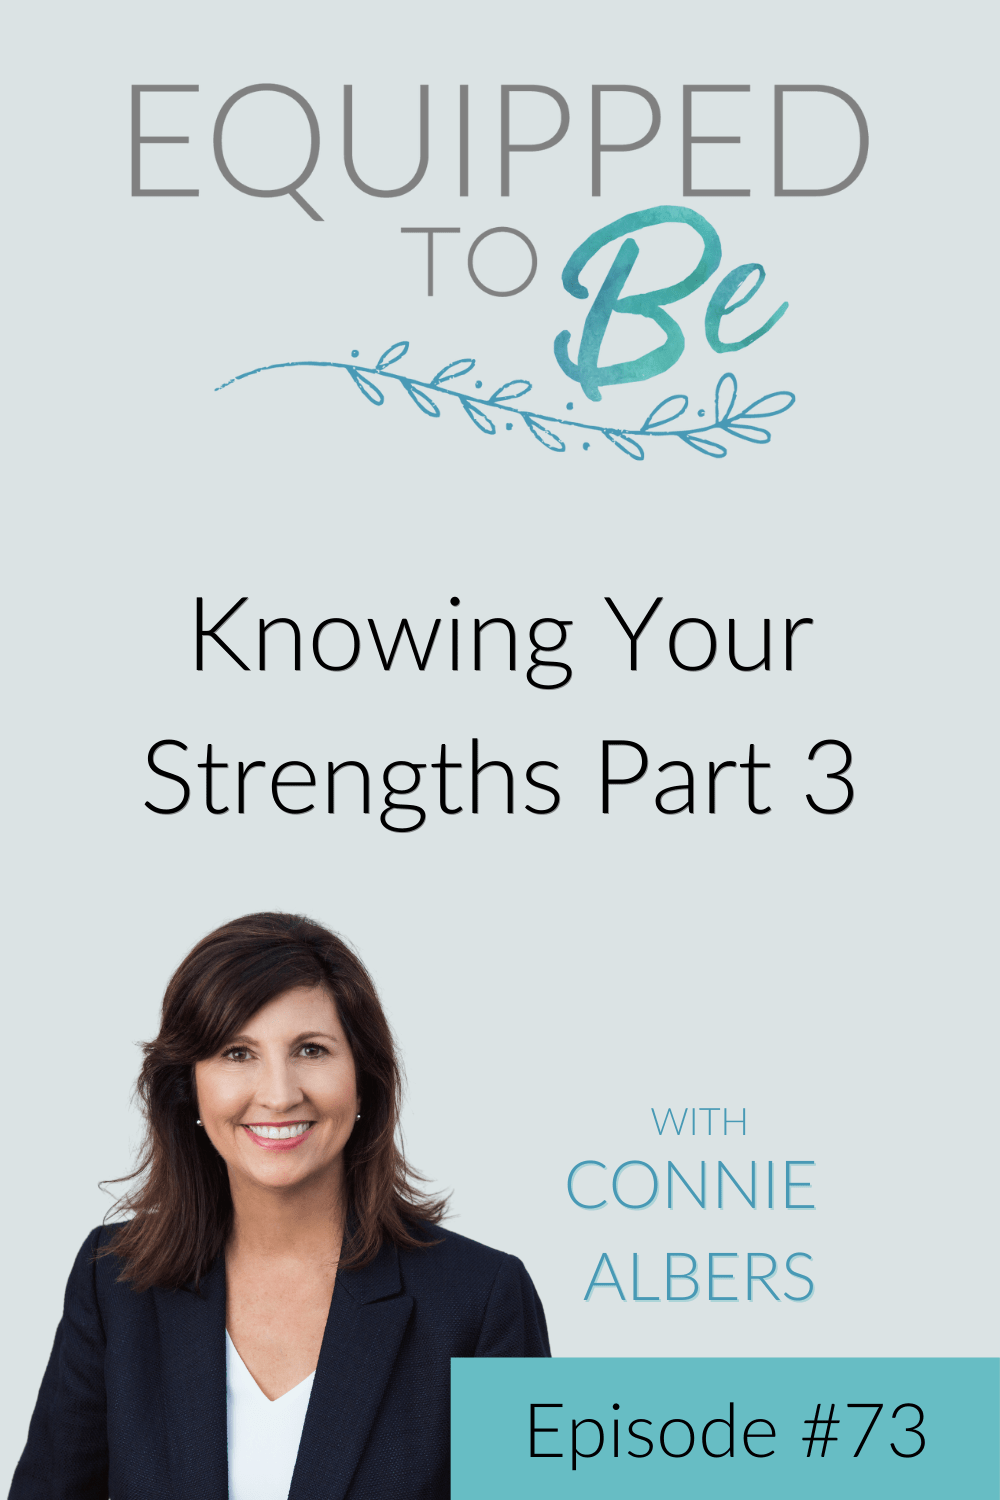 Knowing Your Strengths Part 3 - ETB #73